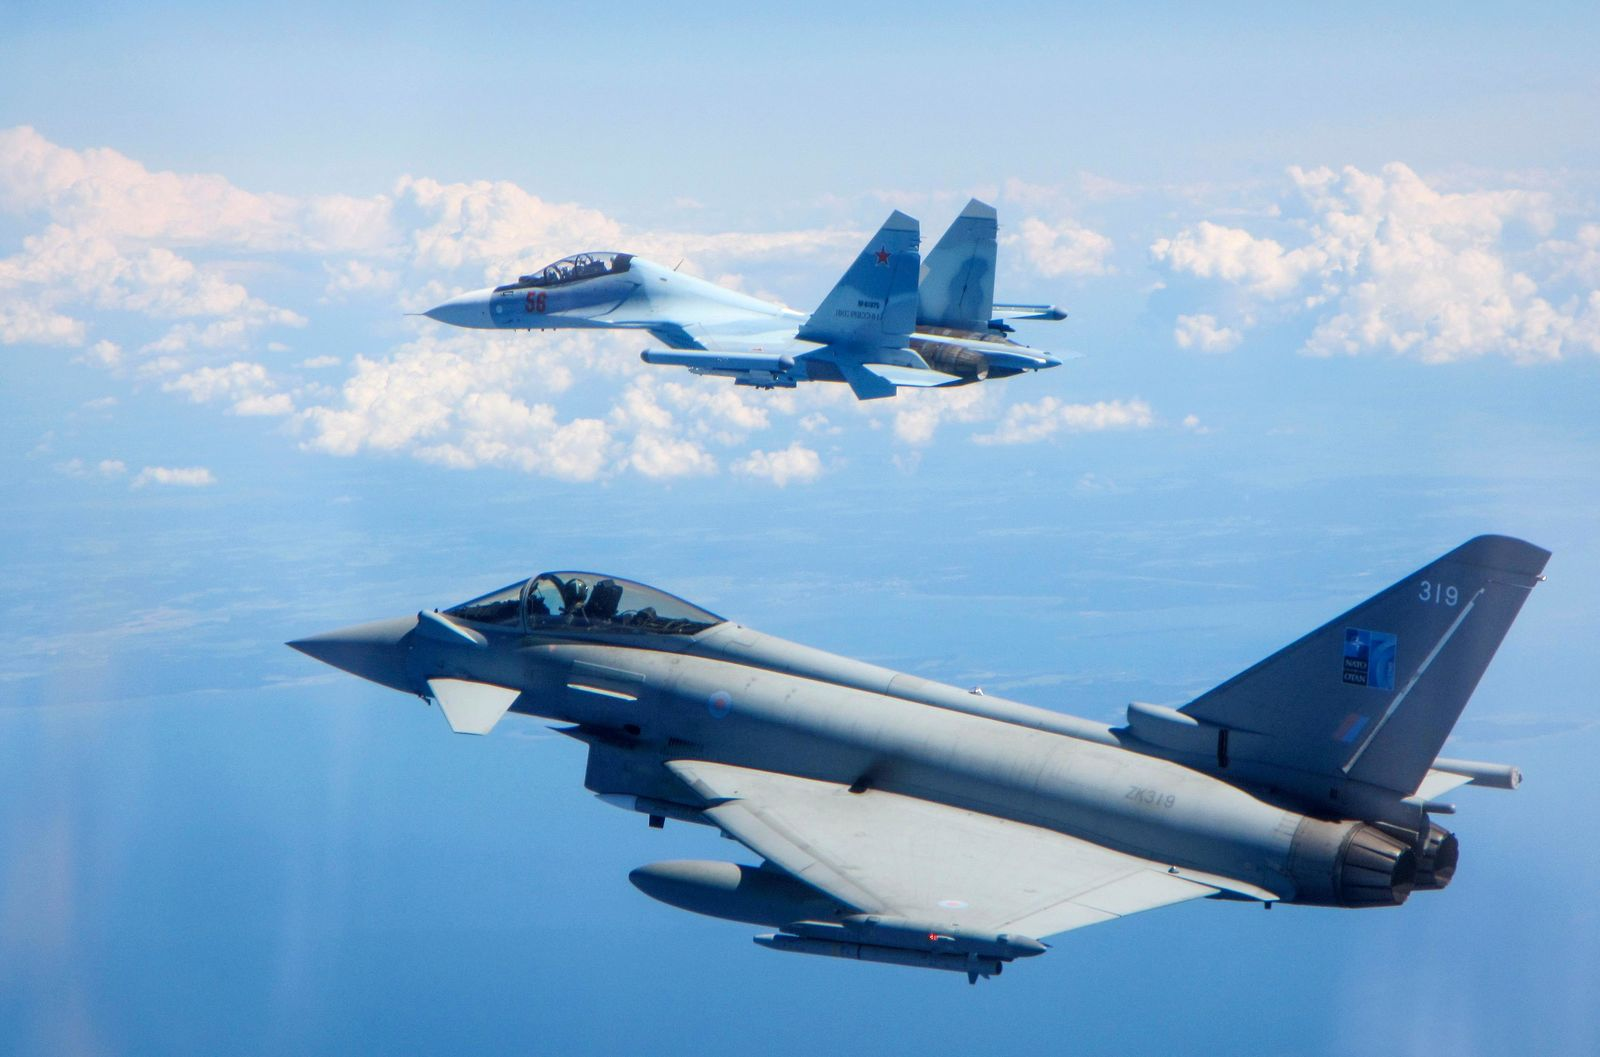 CAPTION CORRECTS AIRCRAFT NAME - In this photo  taken on Saturday, June 15, 2019, a Royal Air Force Typhoon jet, bottom, flies by a Su-30 Flanker fighter.{ } (UK Ministry of Defence via AP)